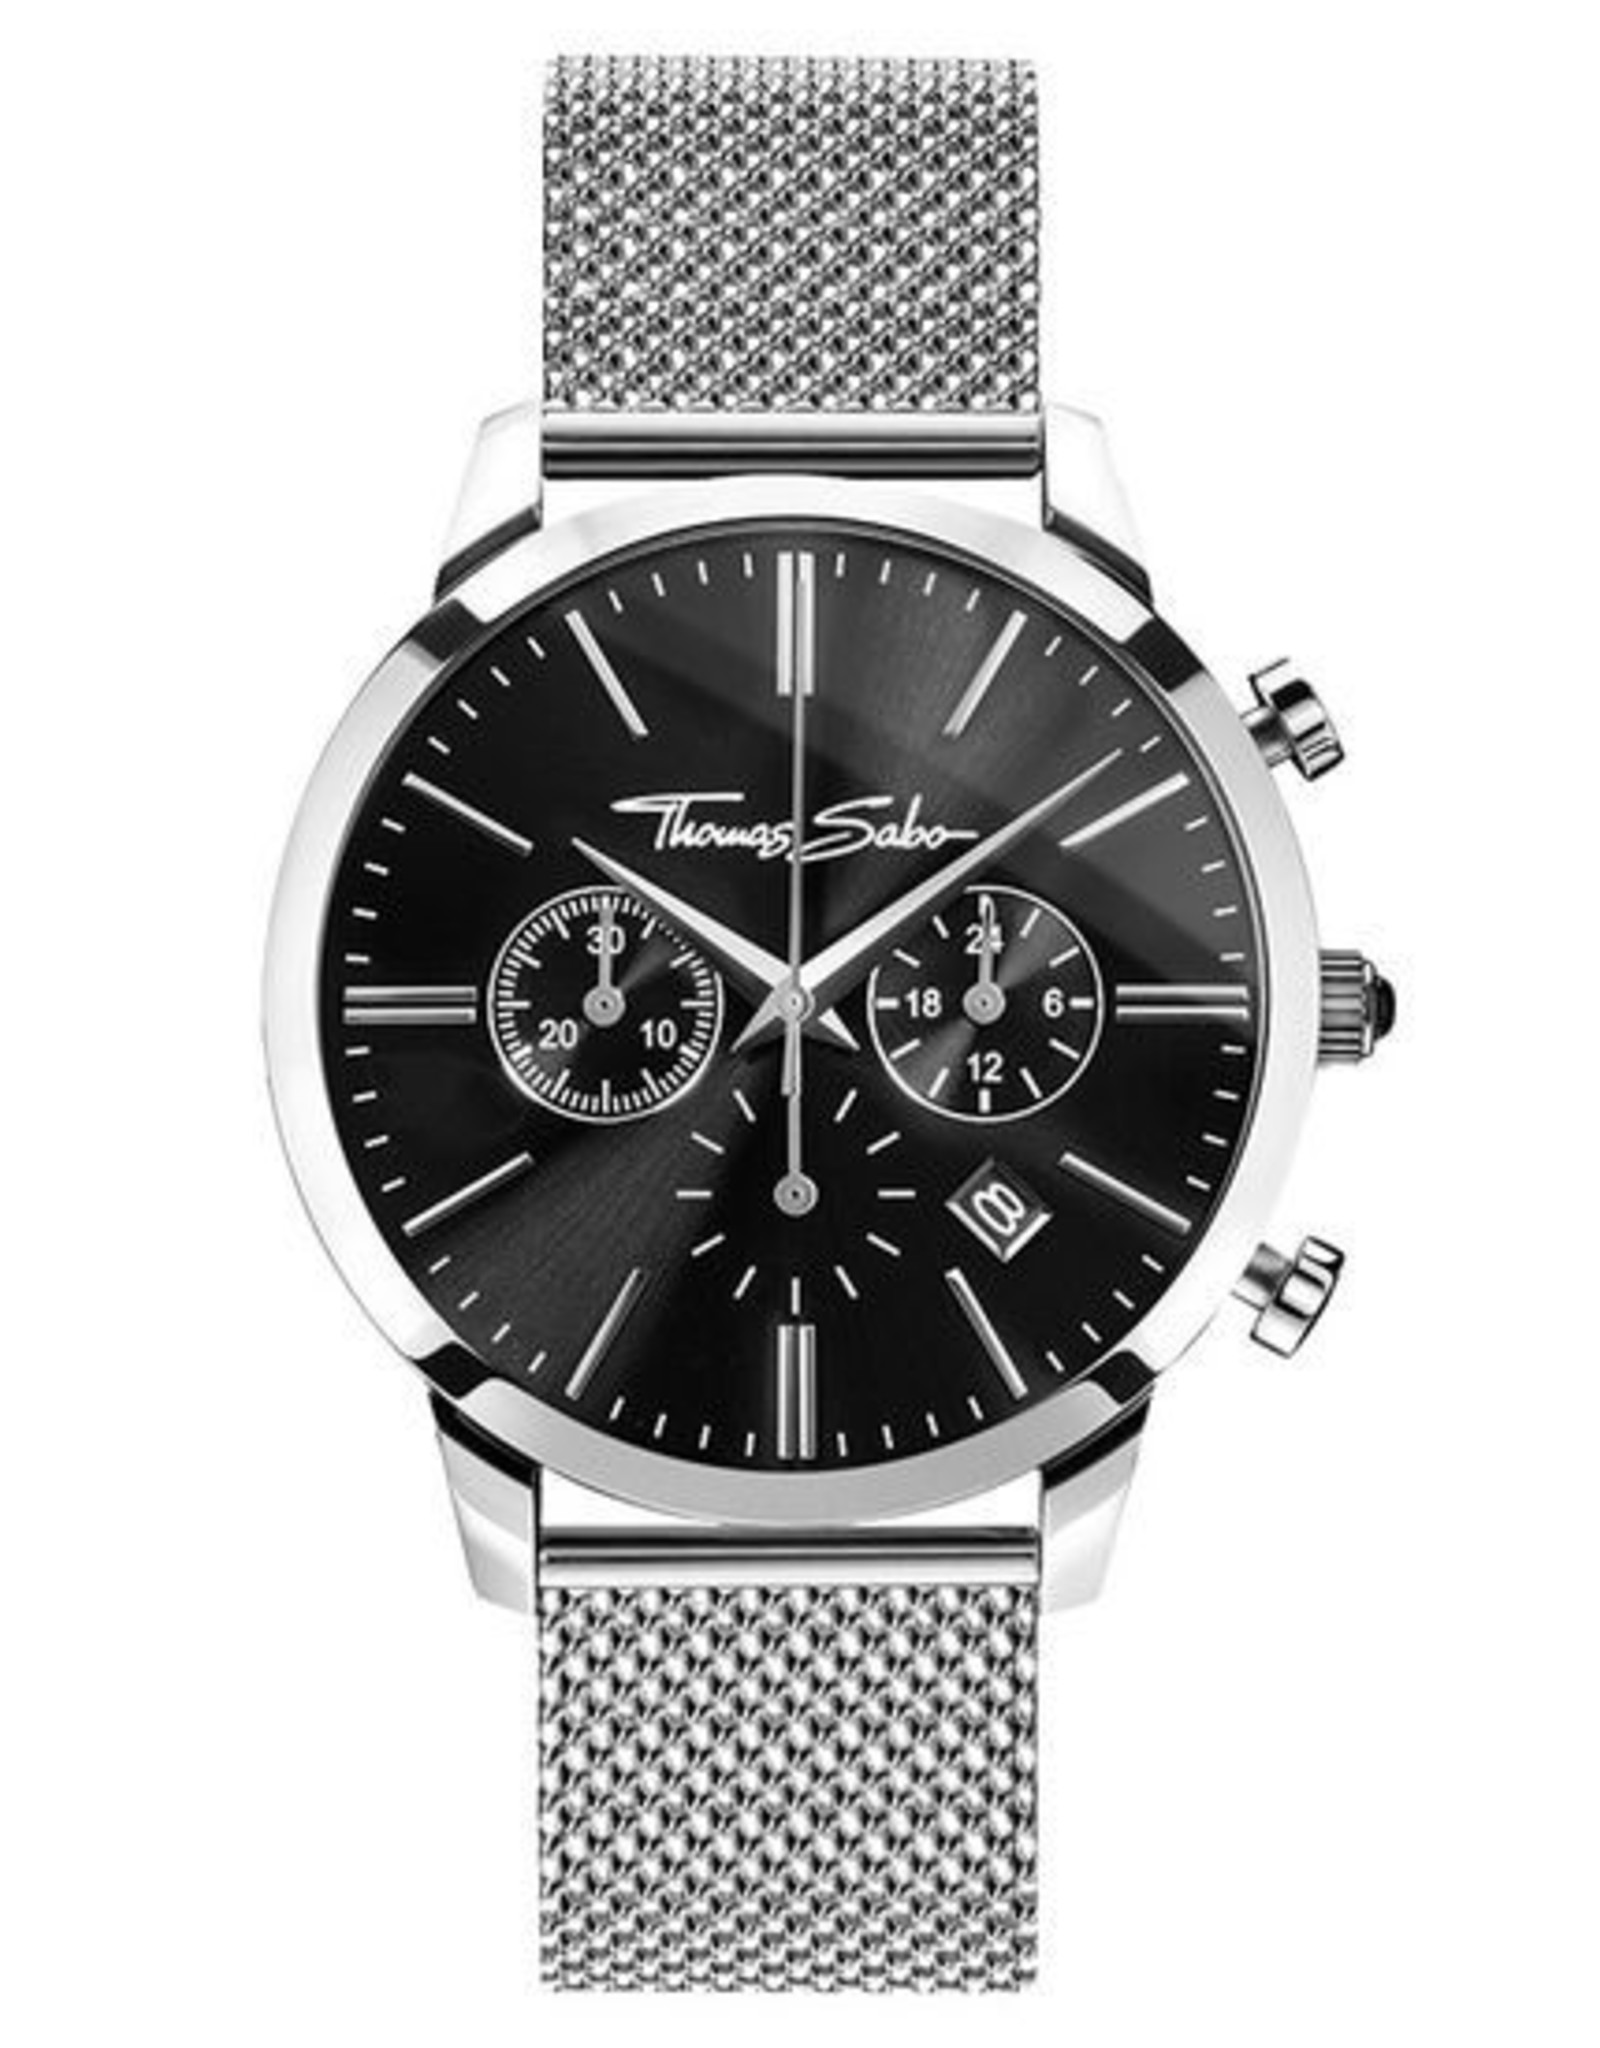 Thomas Sabo Stainless Steel Black Dial Watch